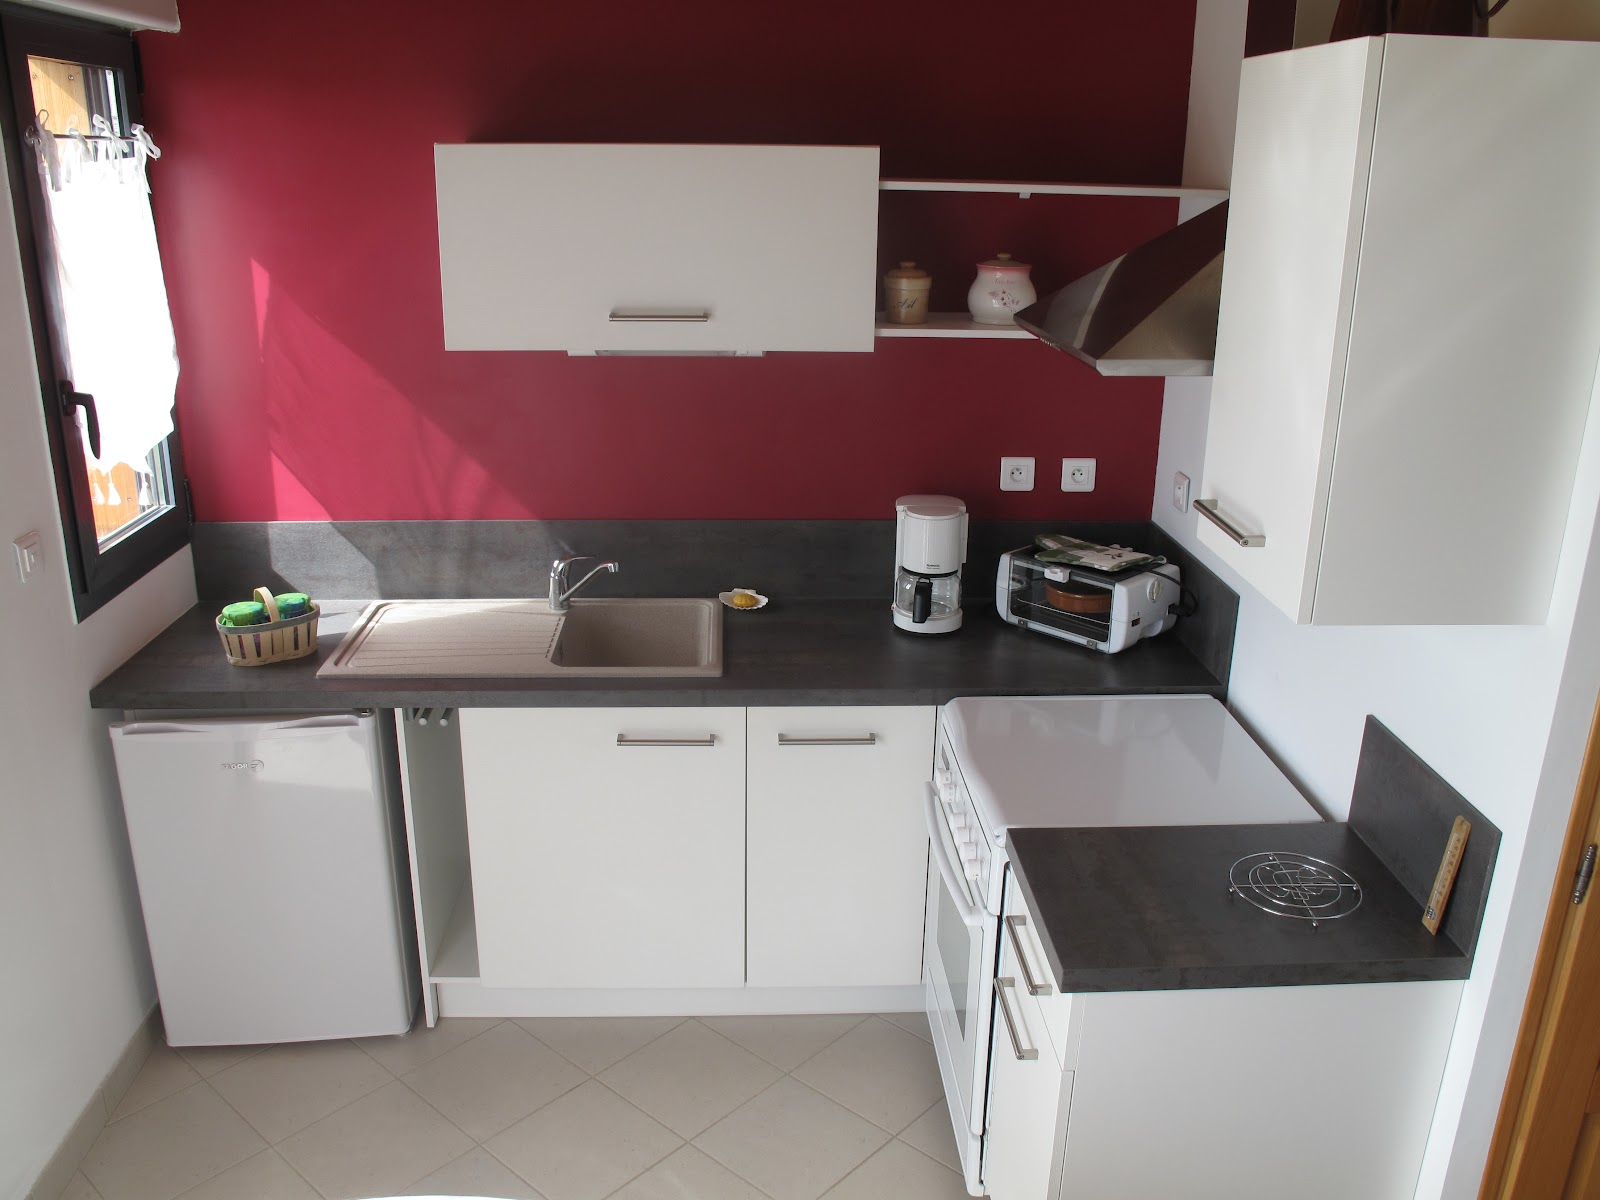 Le ruisseau 82 description du g te for Cuisine 30m2